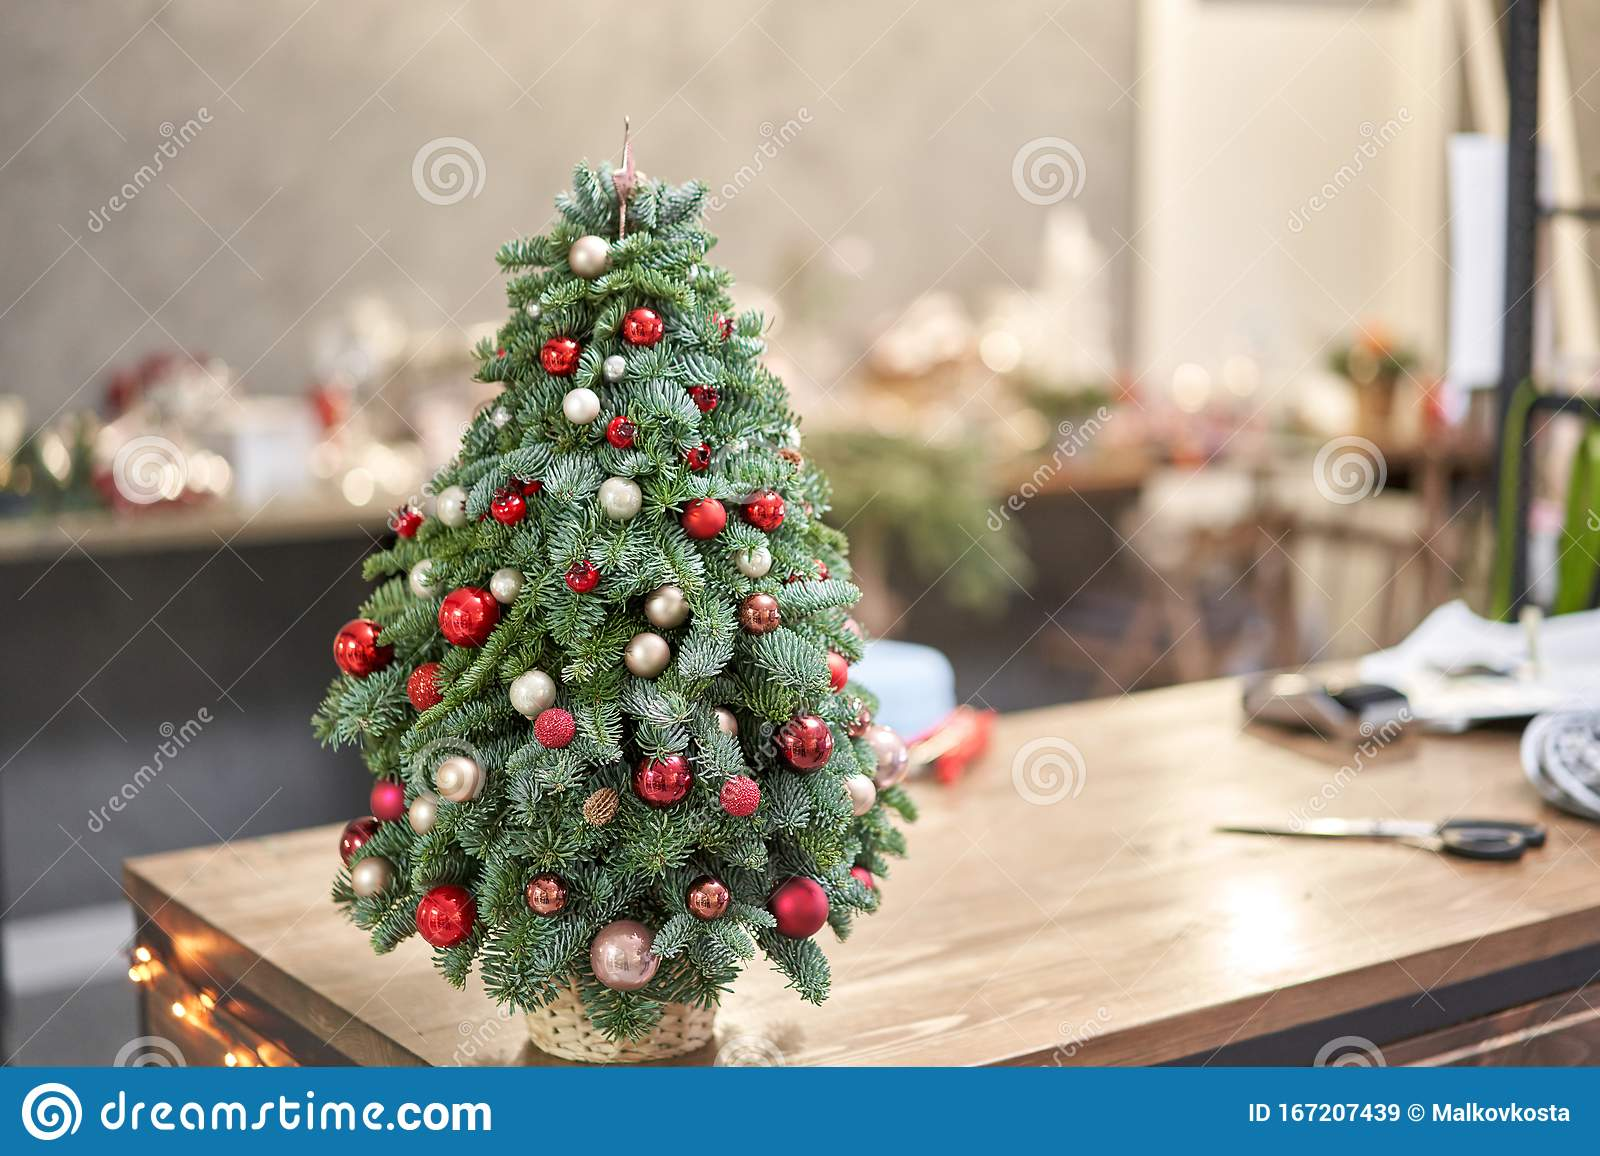 Beautiful Small Christmas Tree On Wooden Table Happy Mood Garland Lamp Bokeh On Background Wallpaper Danish Pine And Stock Image Image Of Feathers Glossy 167207439